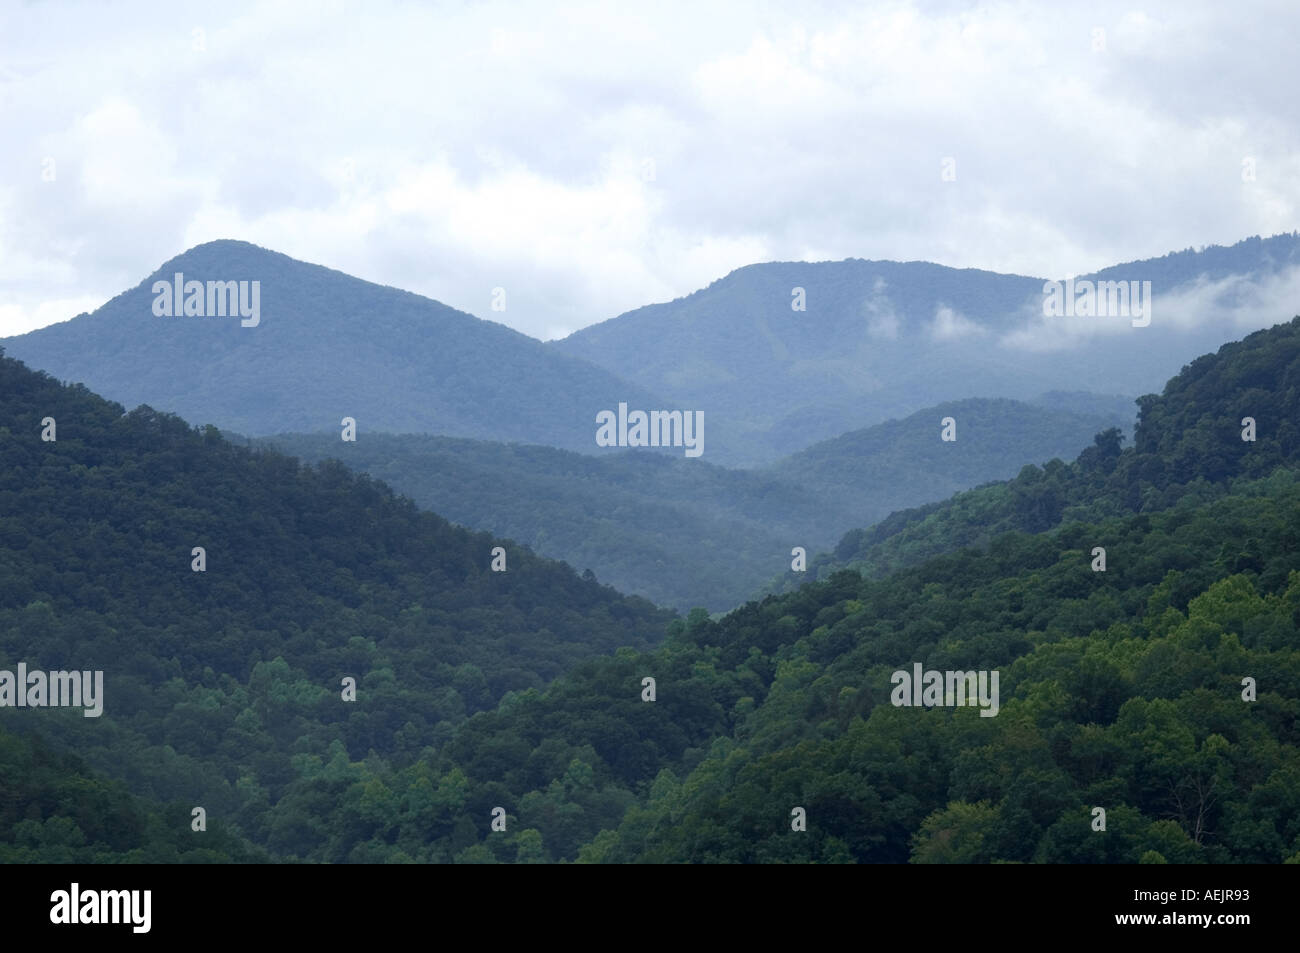 Gatlinburg Gateway to the Great Smoky Mountains National Park Tennessee Stock Photo